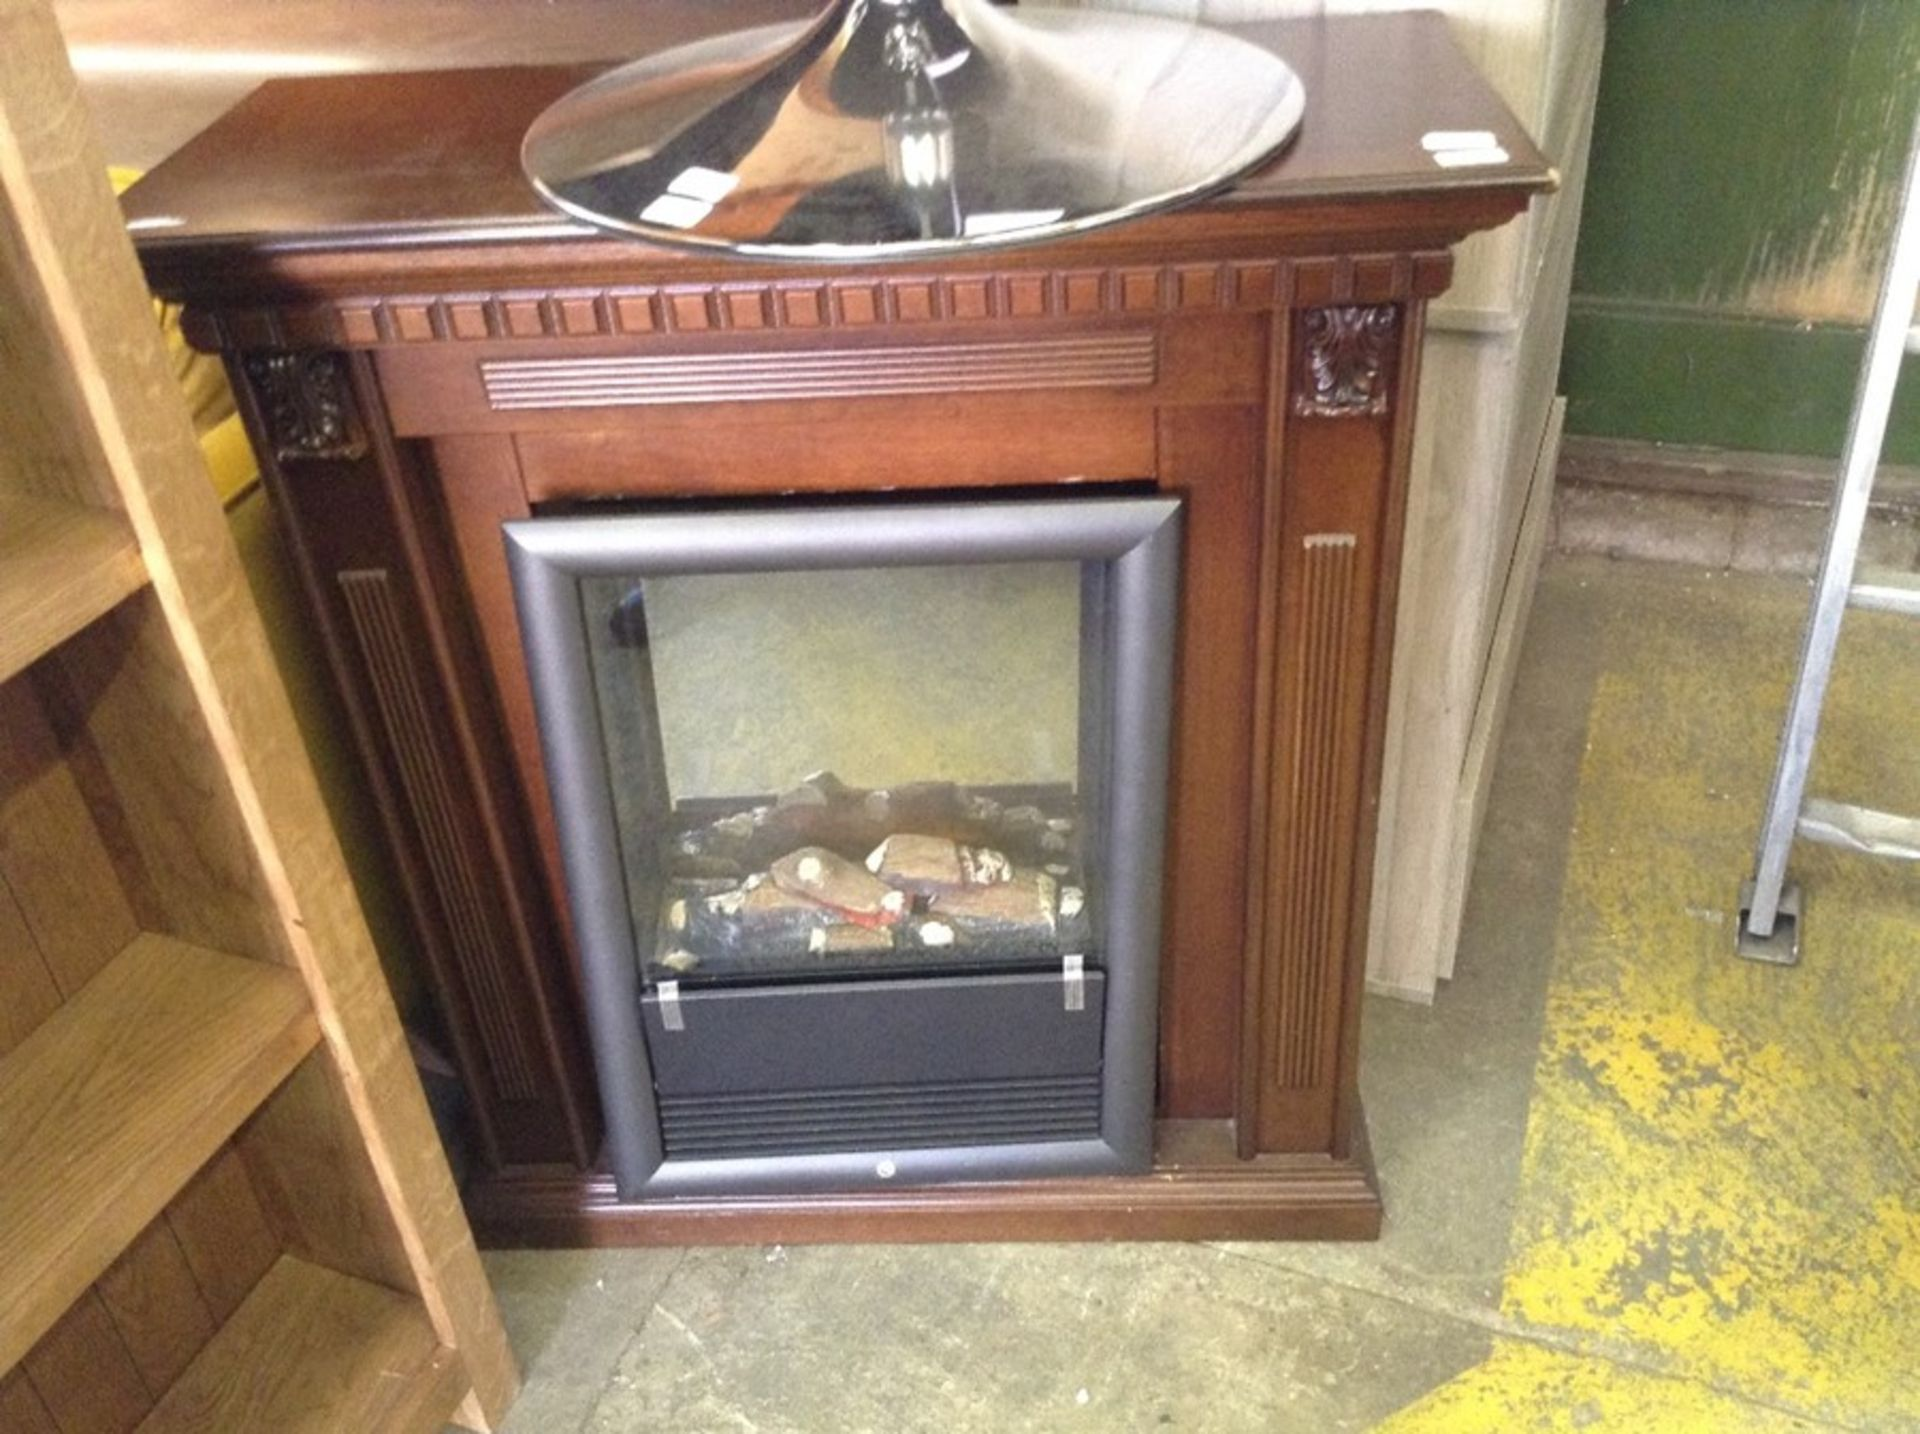 Lot 657 - Belfry Heating Melva Electric Stove and surround d